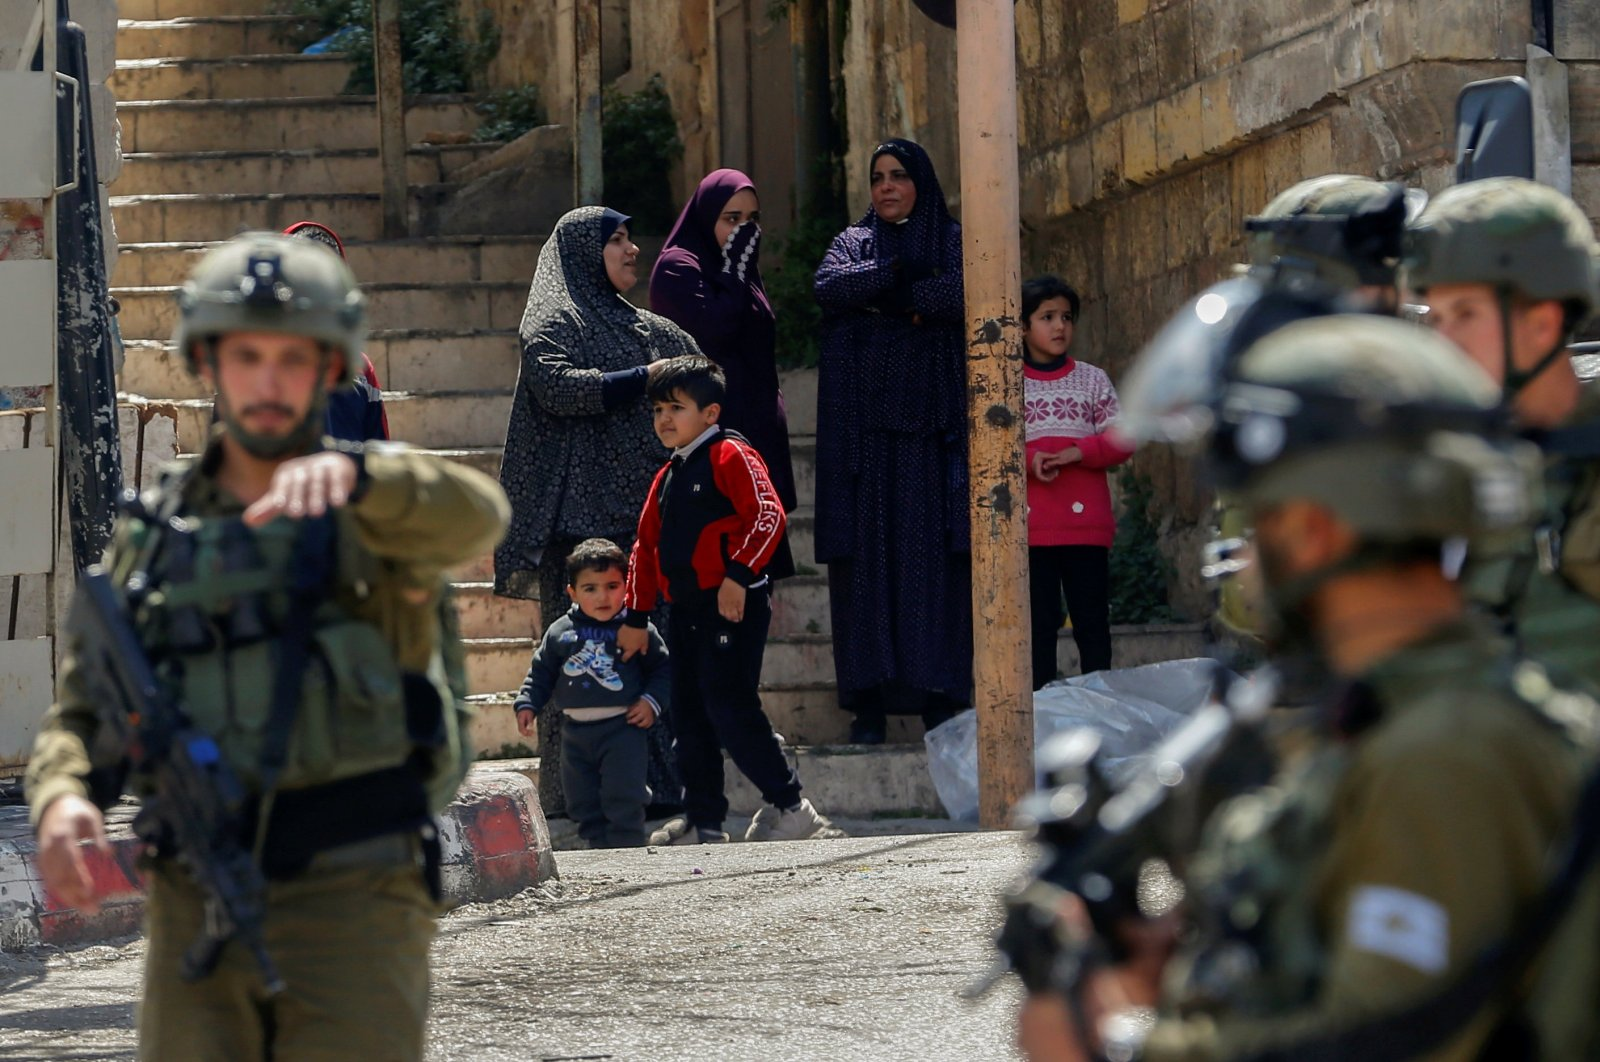 Palestinians watch as Israeli soldiers stand guard during a protest against visits by Israeli settlers, in Hebron in the Israeli-occupied West Bank, March 31, 2021. (Reuters Photo)